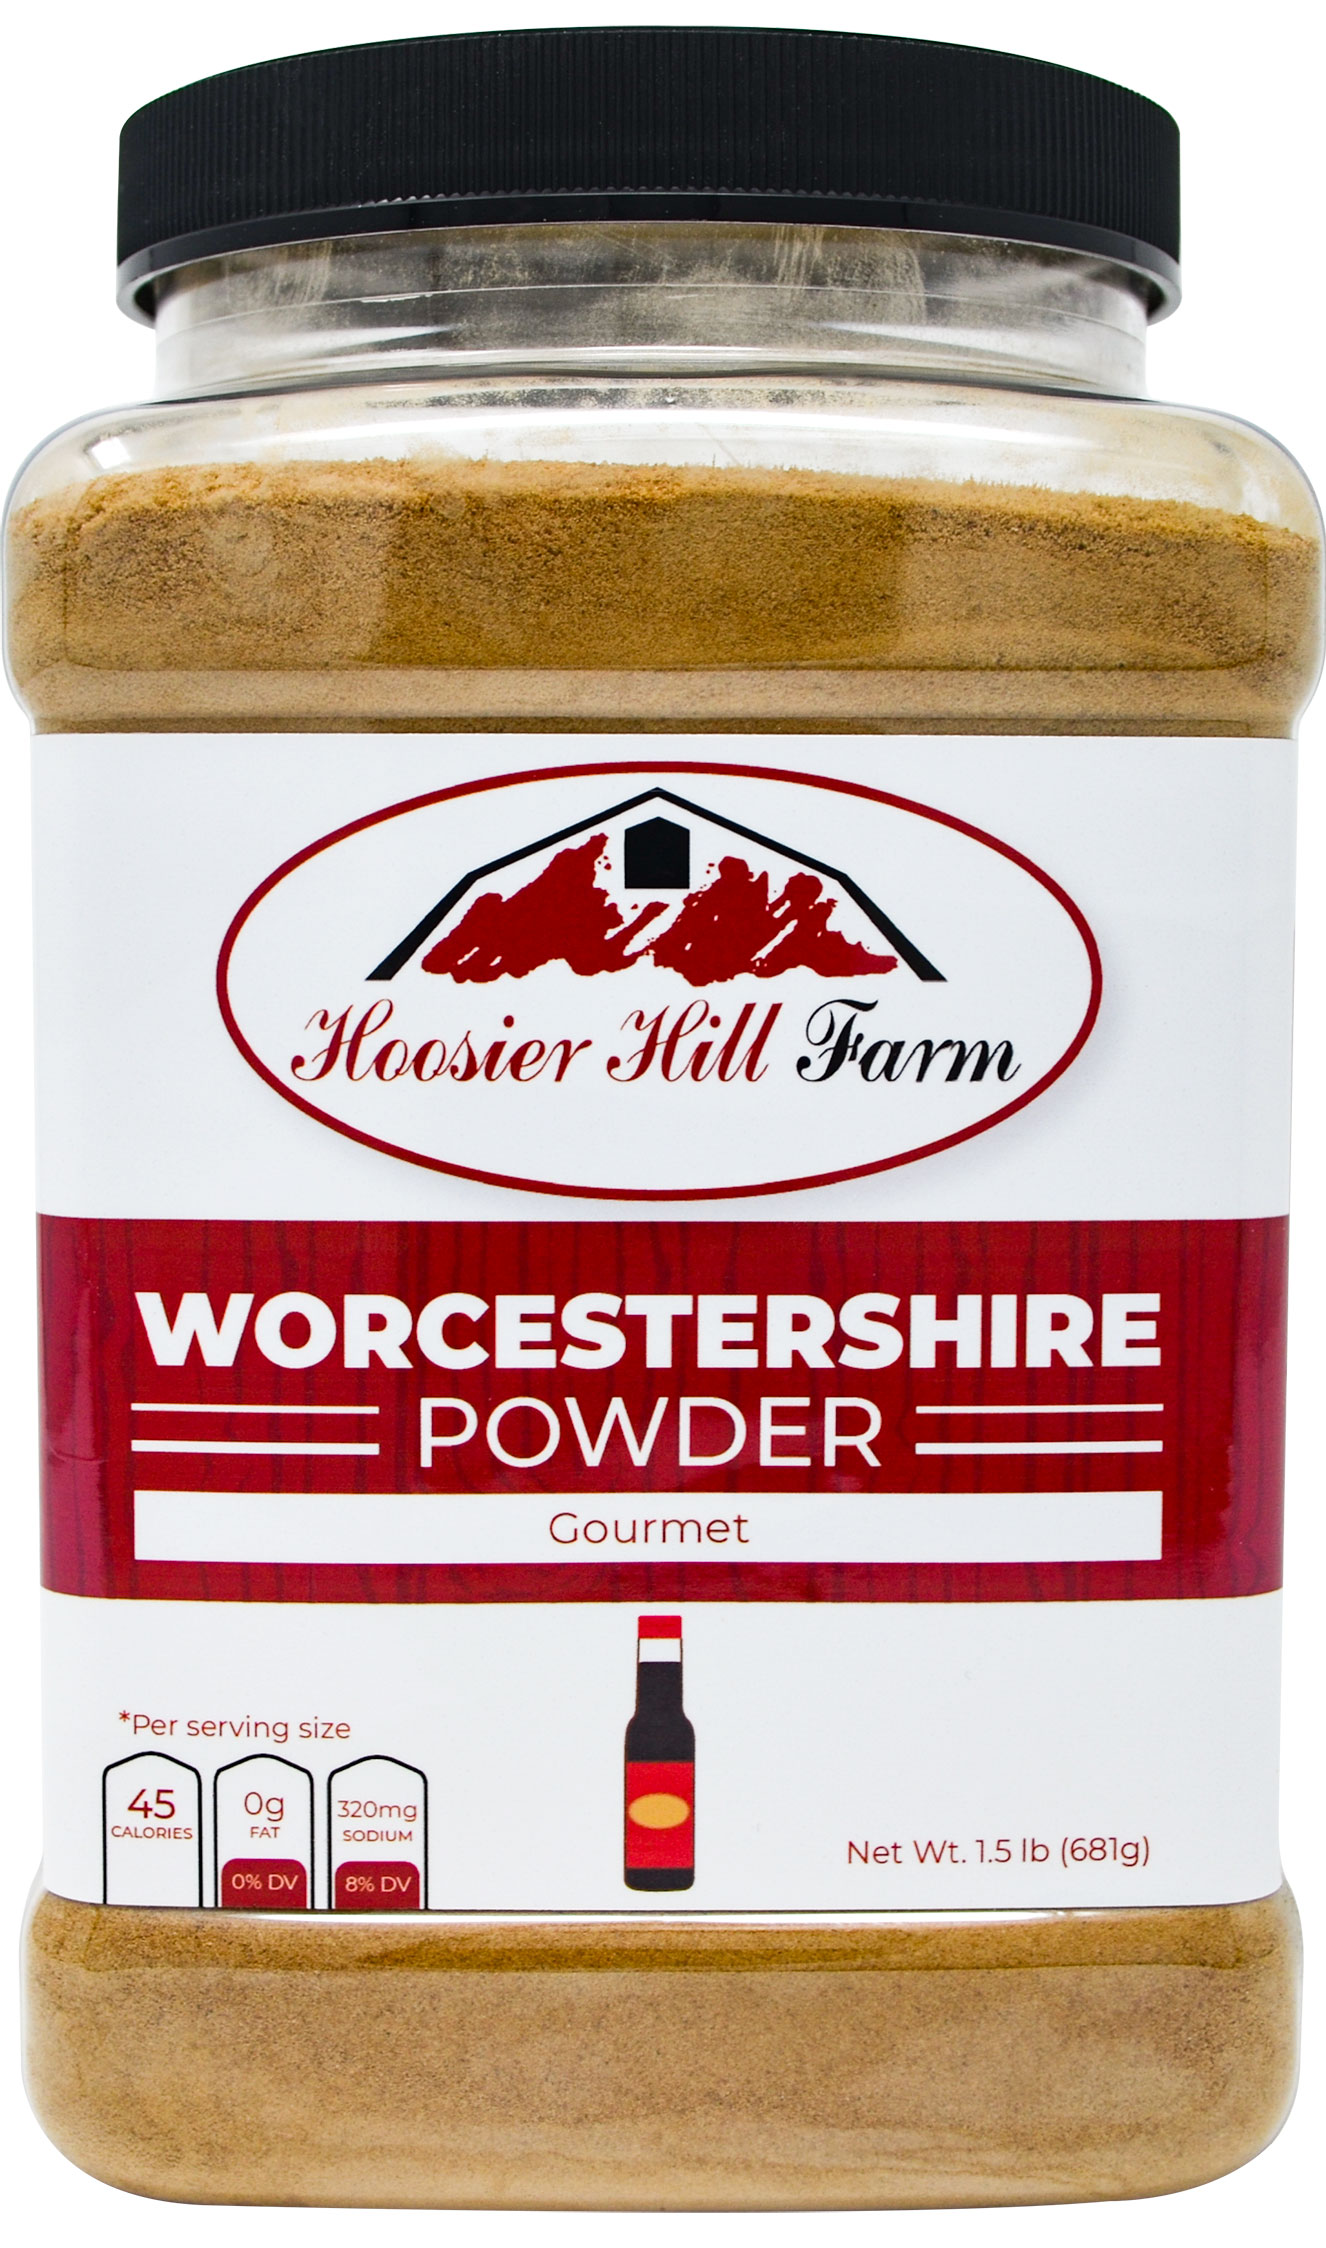 Hoosier Hill Farm Worcestershire Sauce Powder, 1.5 lb